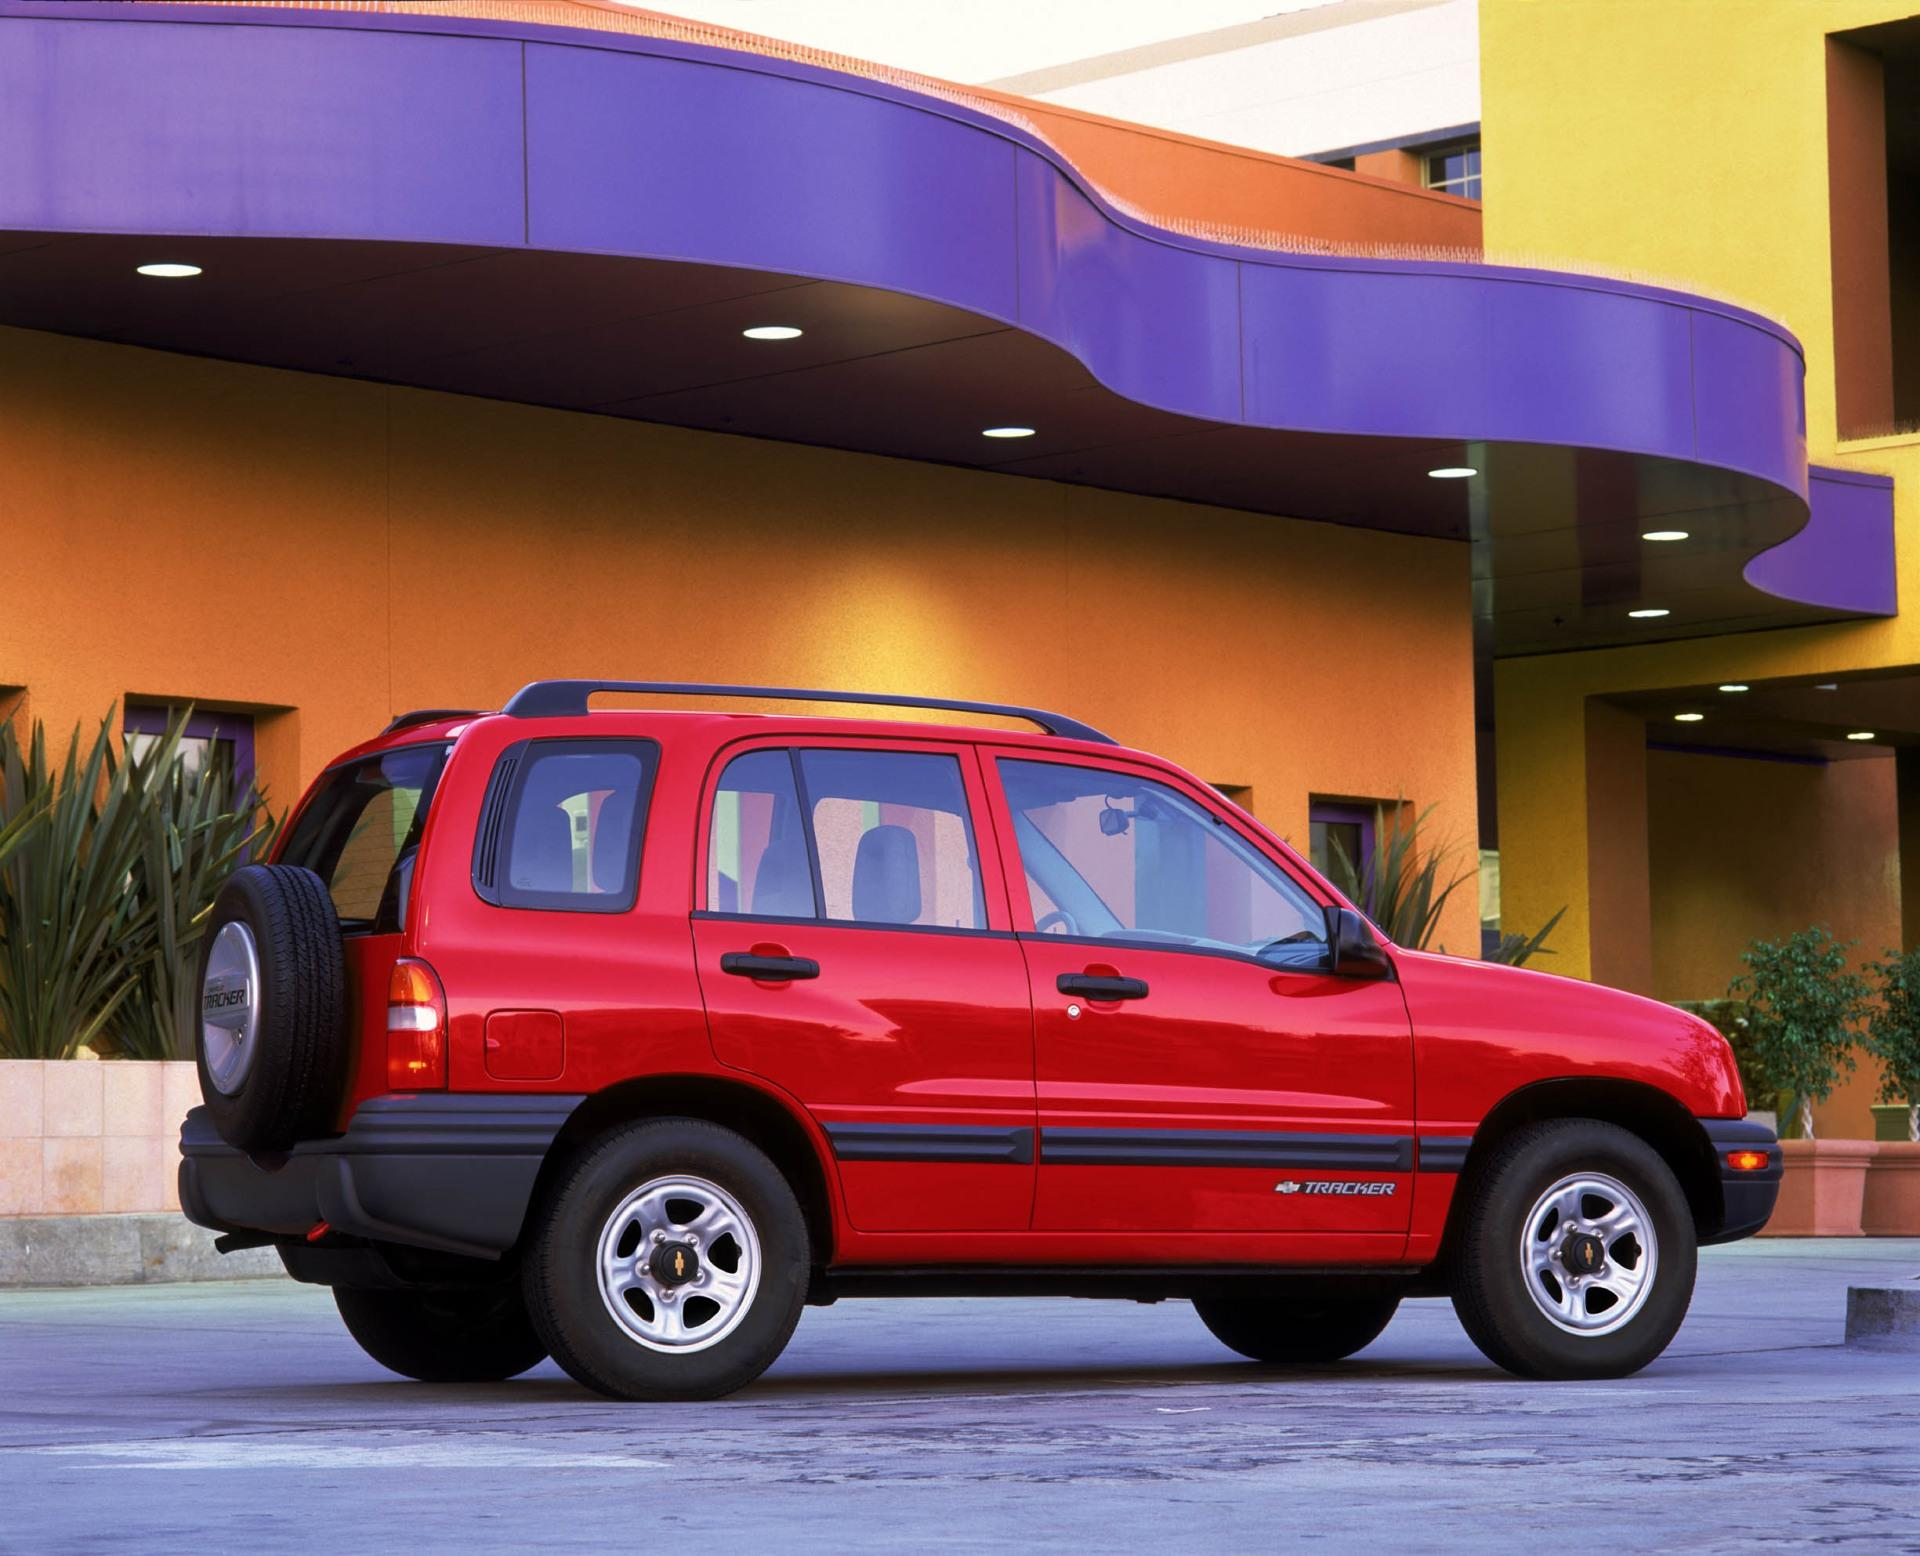 2002 chevrolet tracker pictures history value research news - Tacker fur polstermobel ...